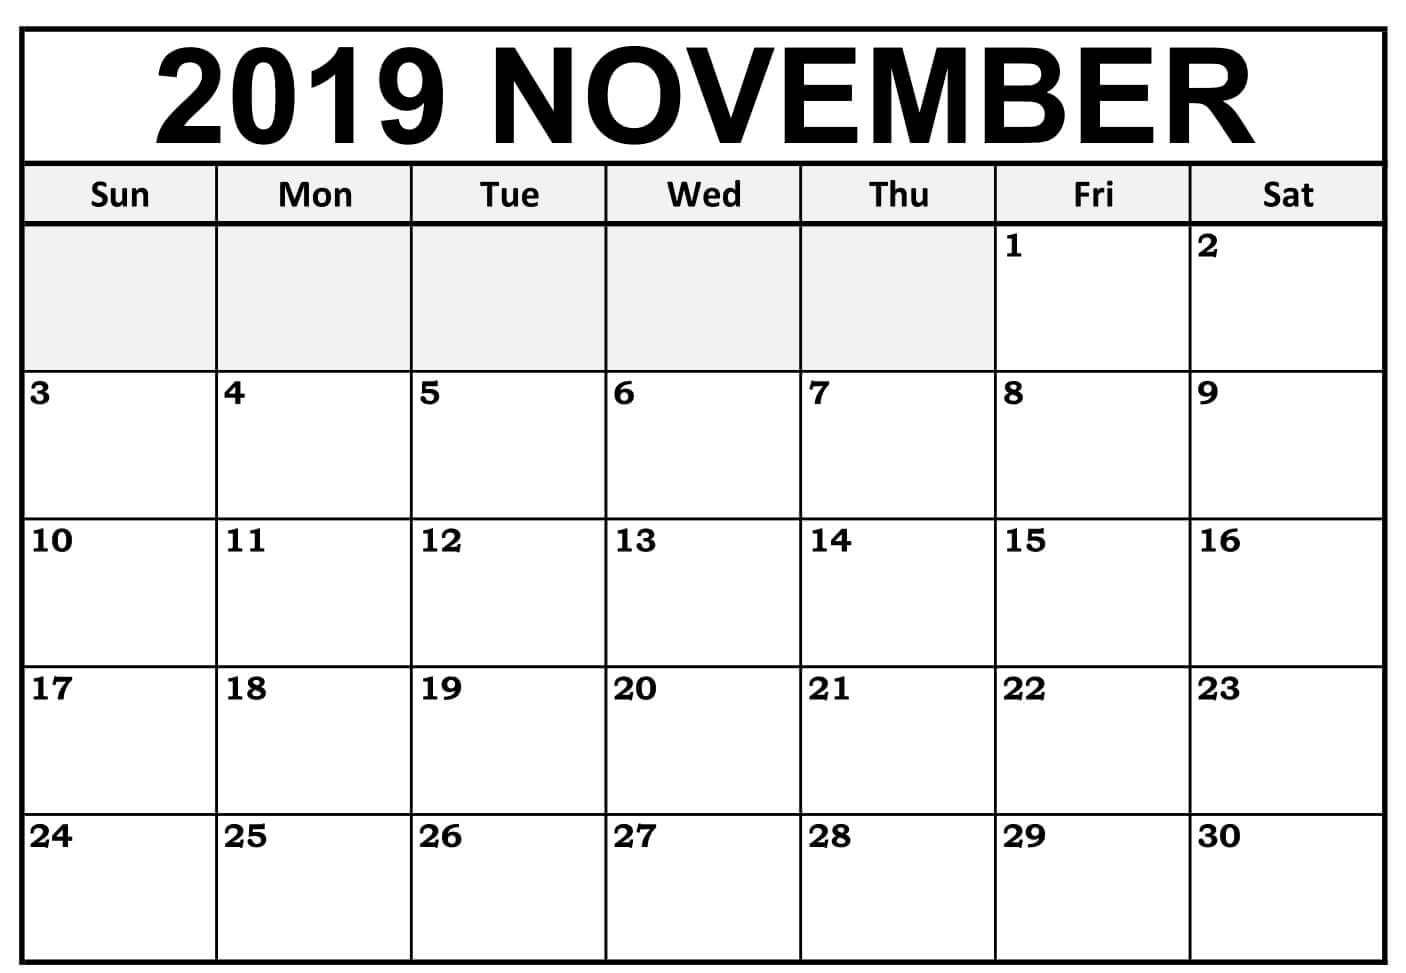 Editable 2019 November Calendar Printable Template With Notes intended for Blank Fillable Calendar